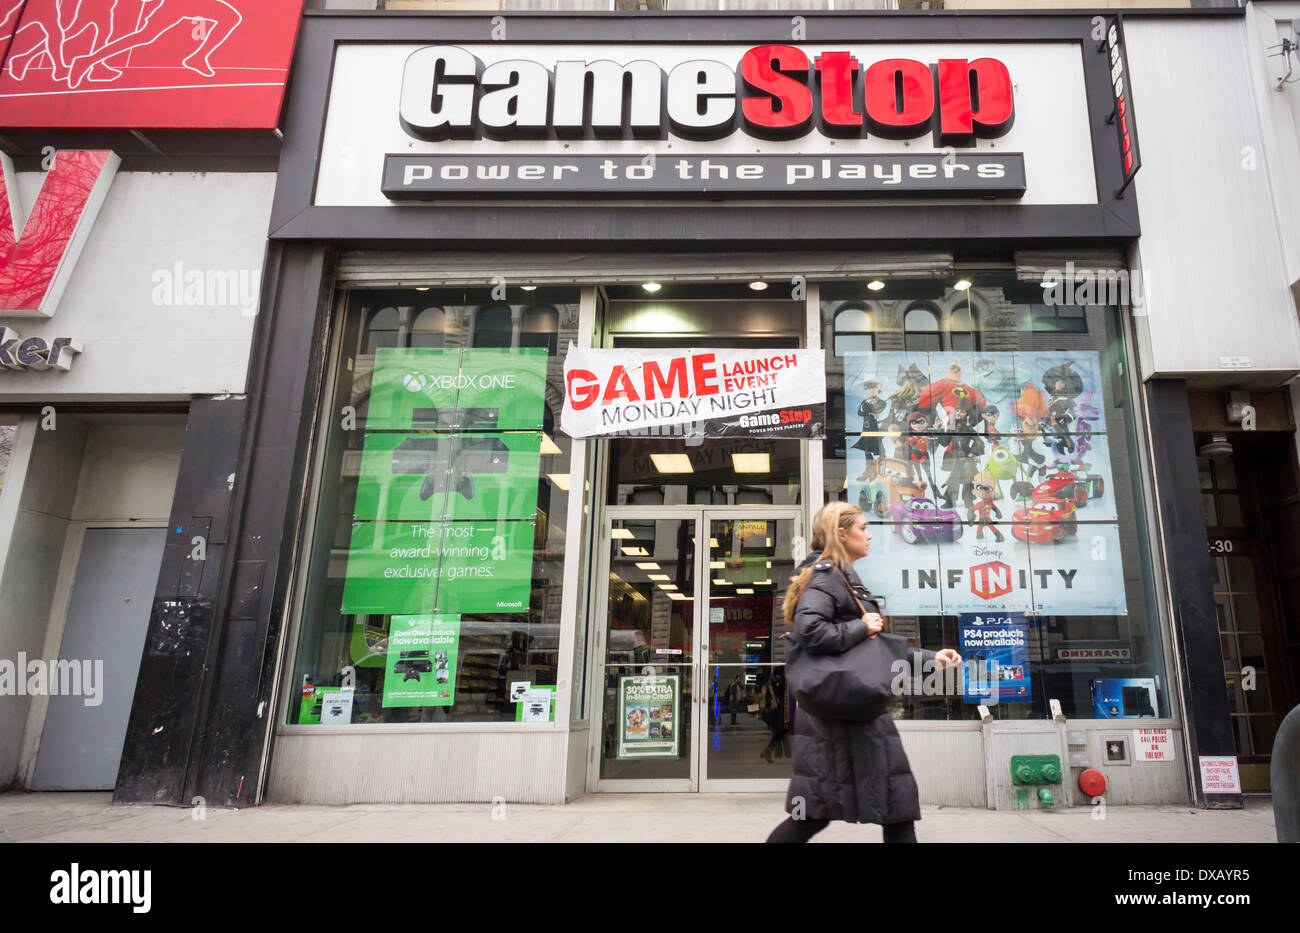 A gamestop store in greenwich village in new york stock photo a gamestop store in greenwich village in new york sciox Choice Image